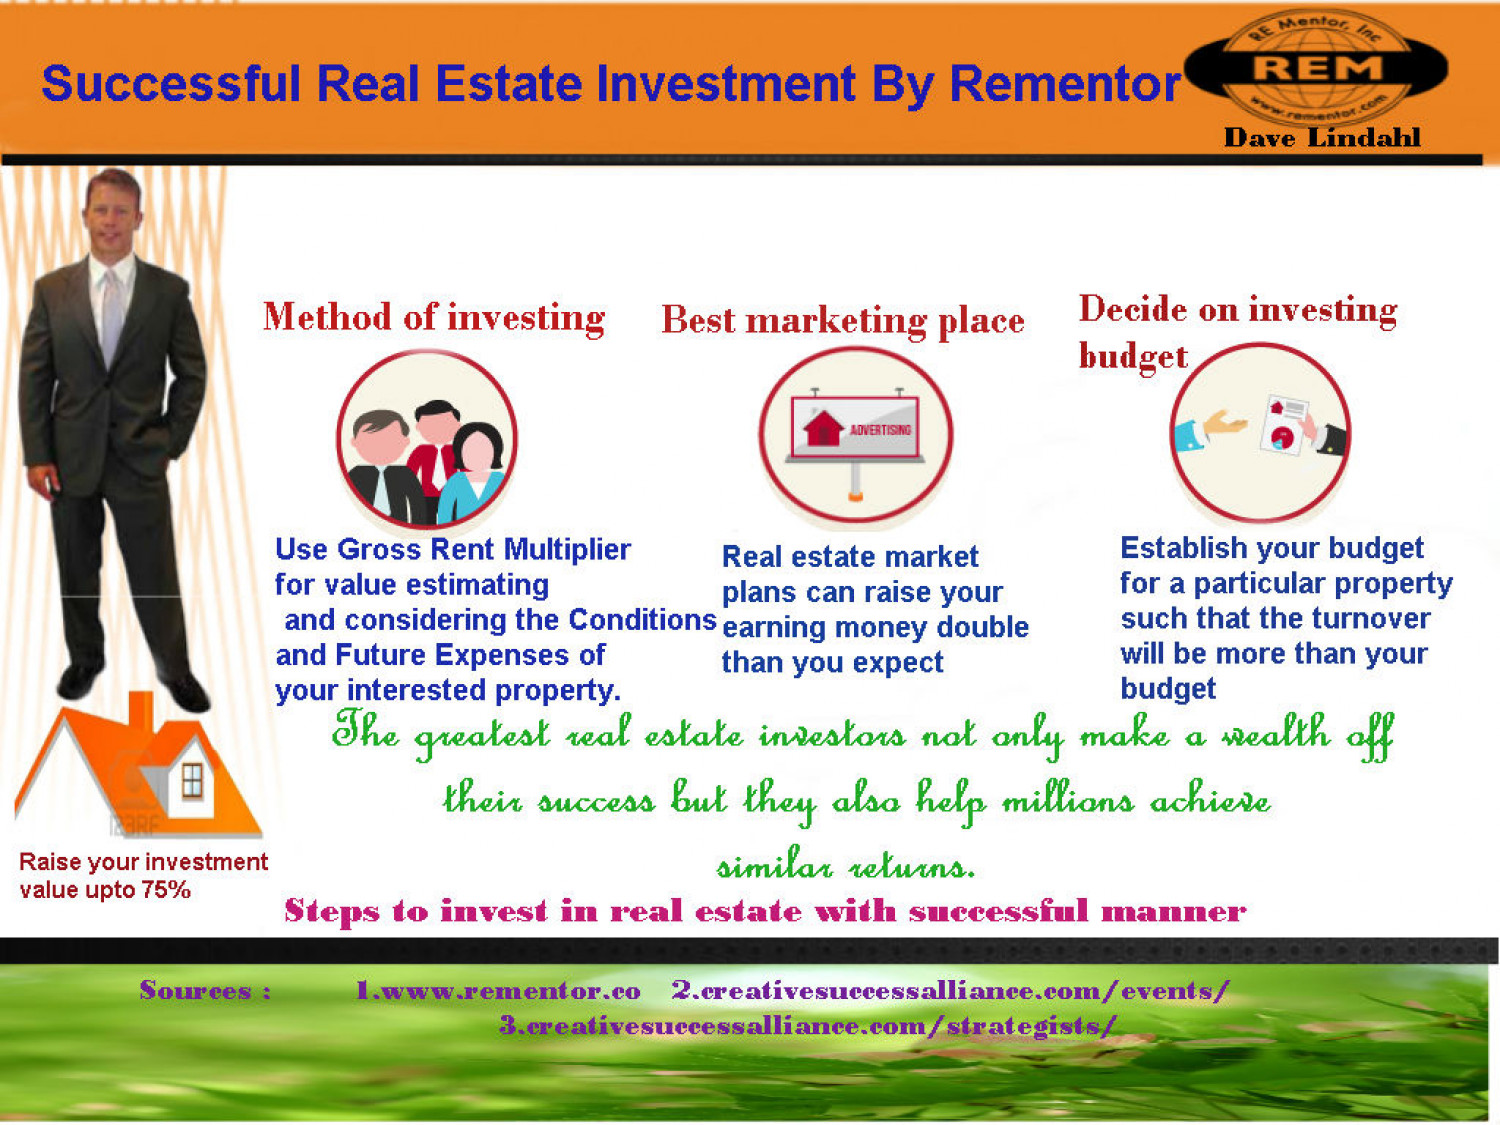 Successful Real Estate Investment By Rementor Infographic. Divorce Lawyers In Dallas Tx. Certified Coding Classes Online. Mobile Marketing Made Easy Buffalo Dwi Lawyer. Atlantic Telephone Membership Corporation. Security And Compliance Army Gi Bill Transfer. Public Storage Indianapolis 401 K Providers. Need To Pass A Drug Test Tomorrow. How To Apply Health Insurance